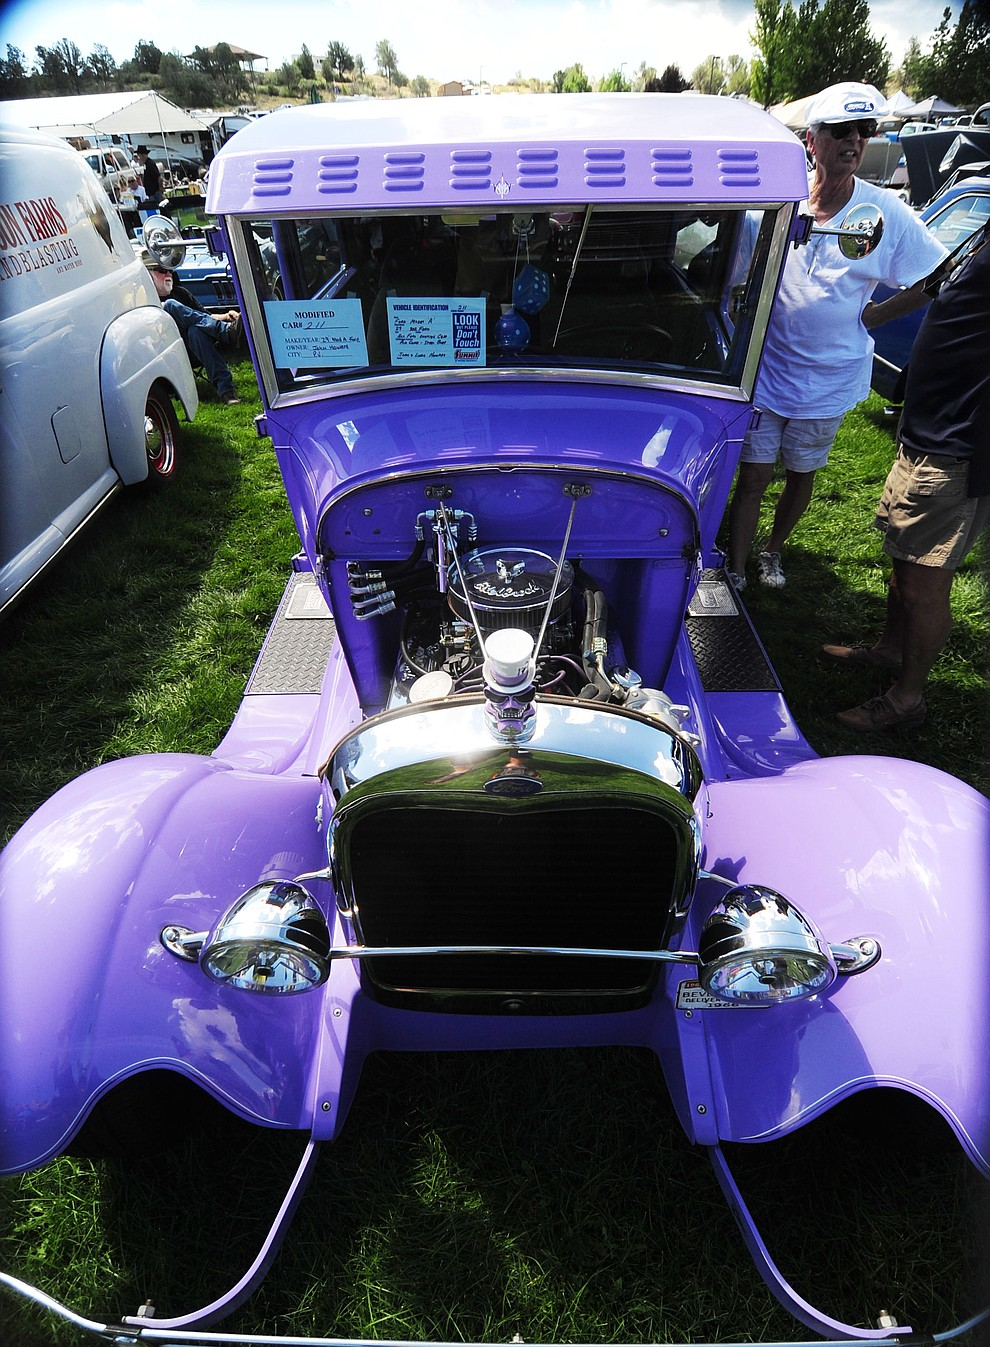 This 1929 Model A Ford is just one of hundreds of cars, trucks, and parts vendors at the 42nd Annual Prescott Antique Auto Club show at Watson Lake Park Saturday. The show continues all day on Sunday.  (Les Stukenberg/The Daily Courier)